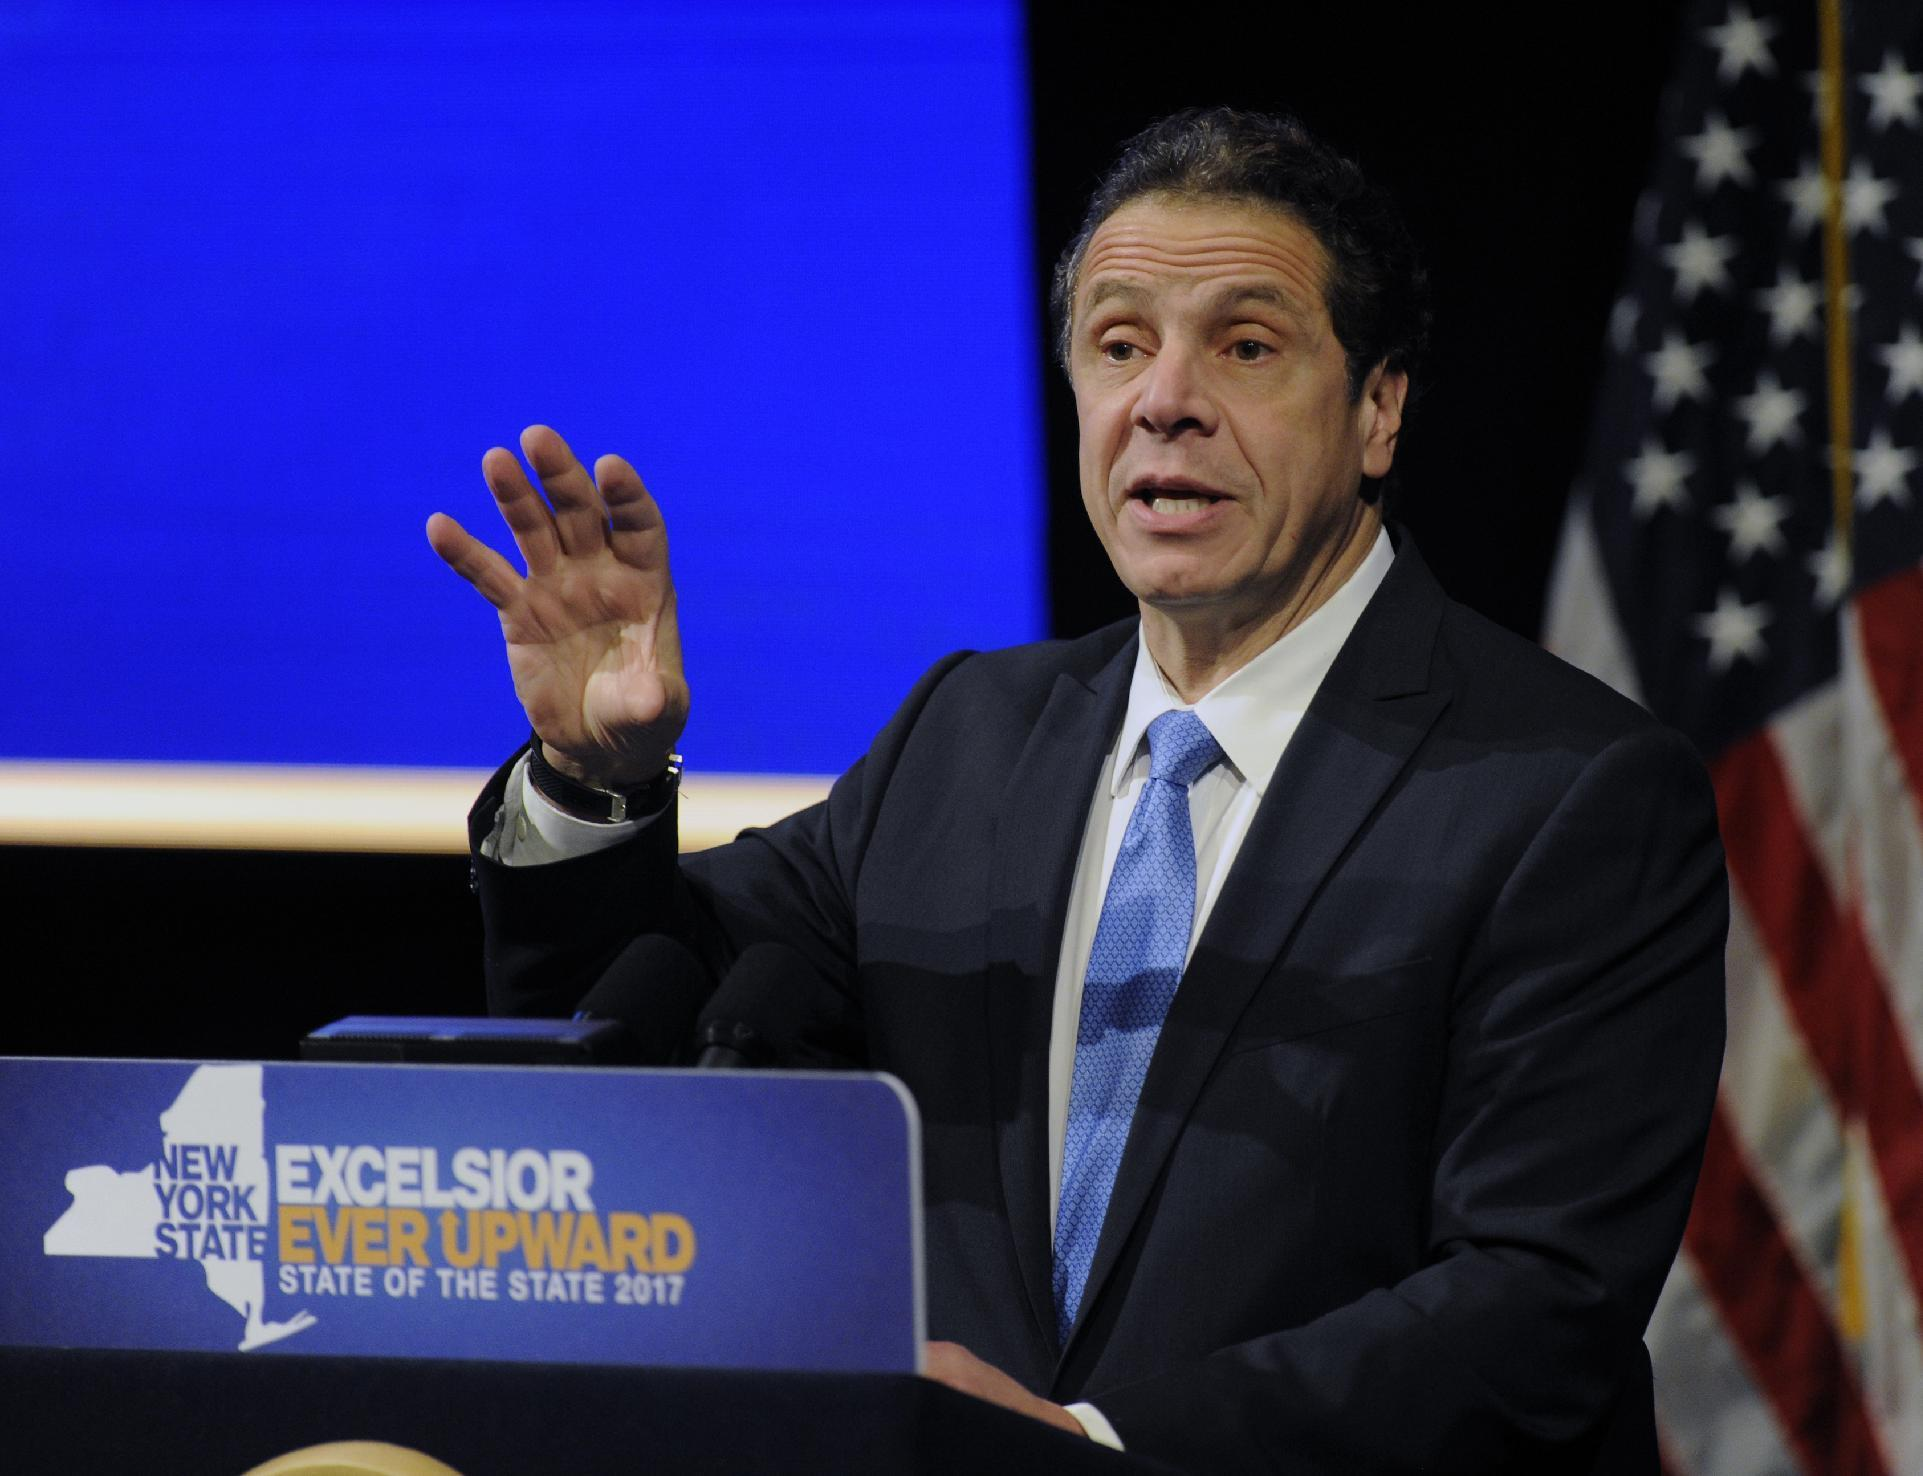 Trumping Trump? Democrat Cuomo courts 'middle-class anger'